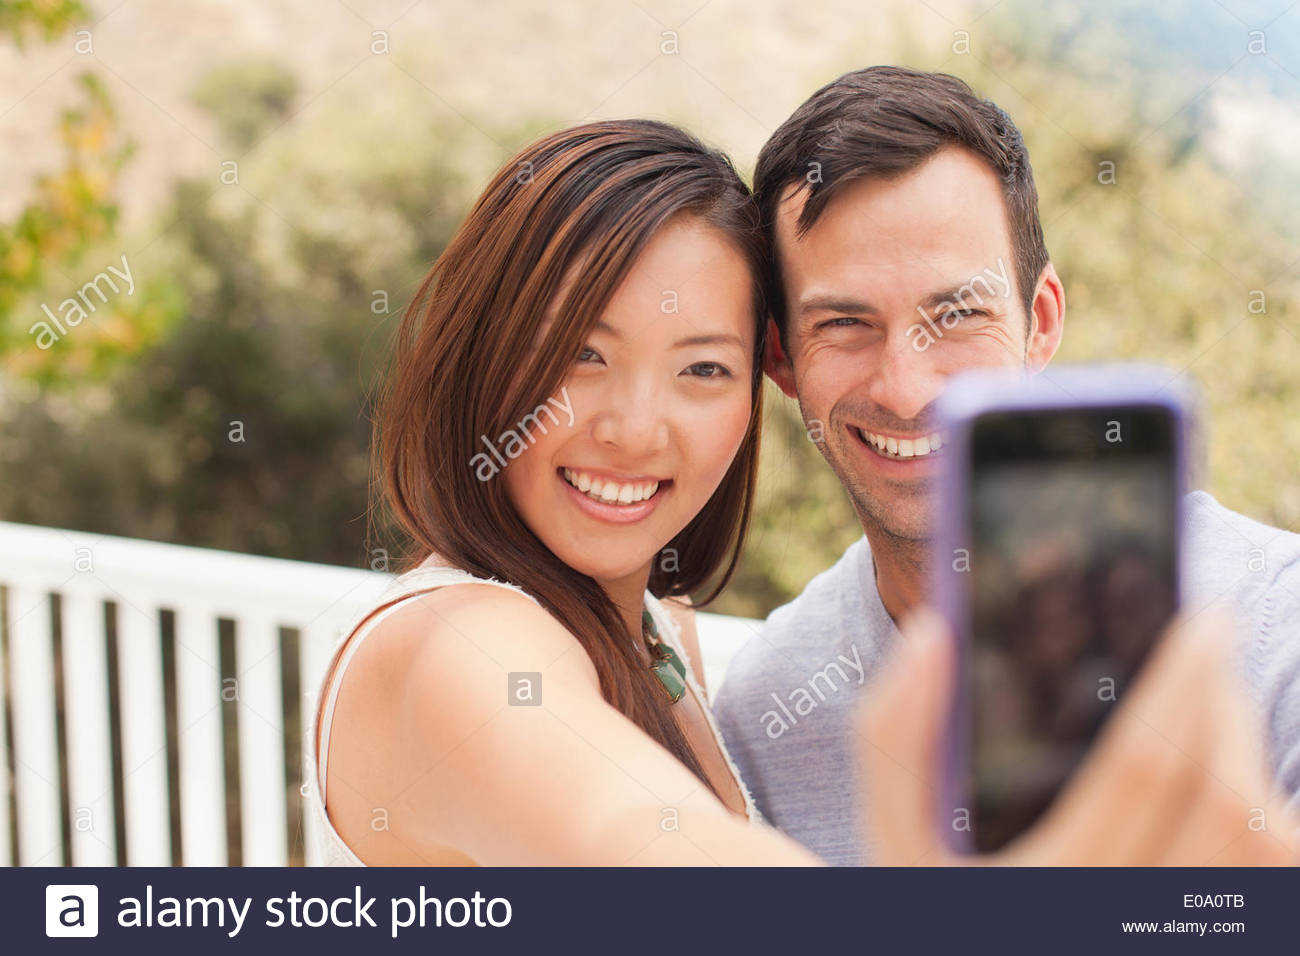 Couple taking picture of themselves - Stock Image